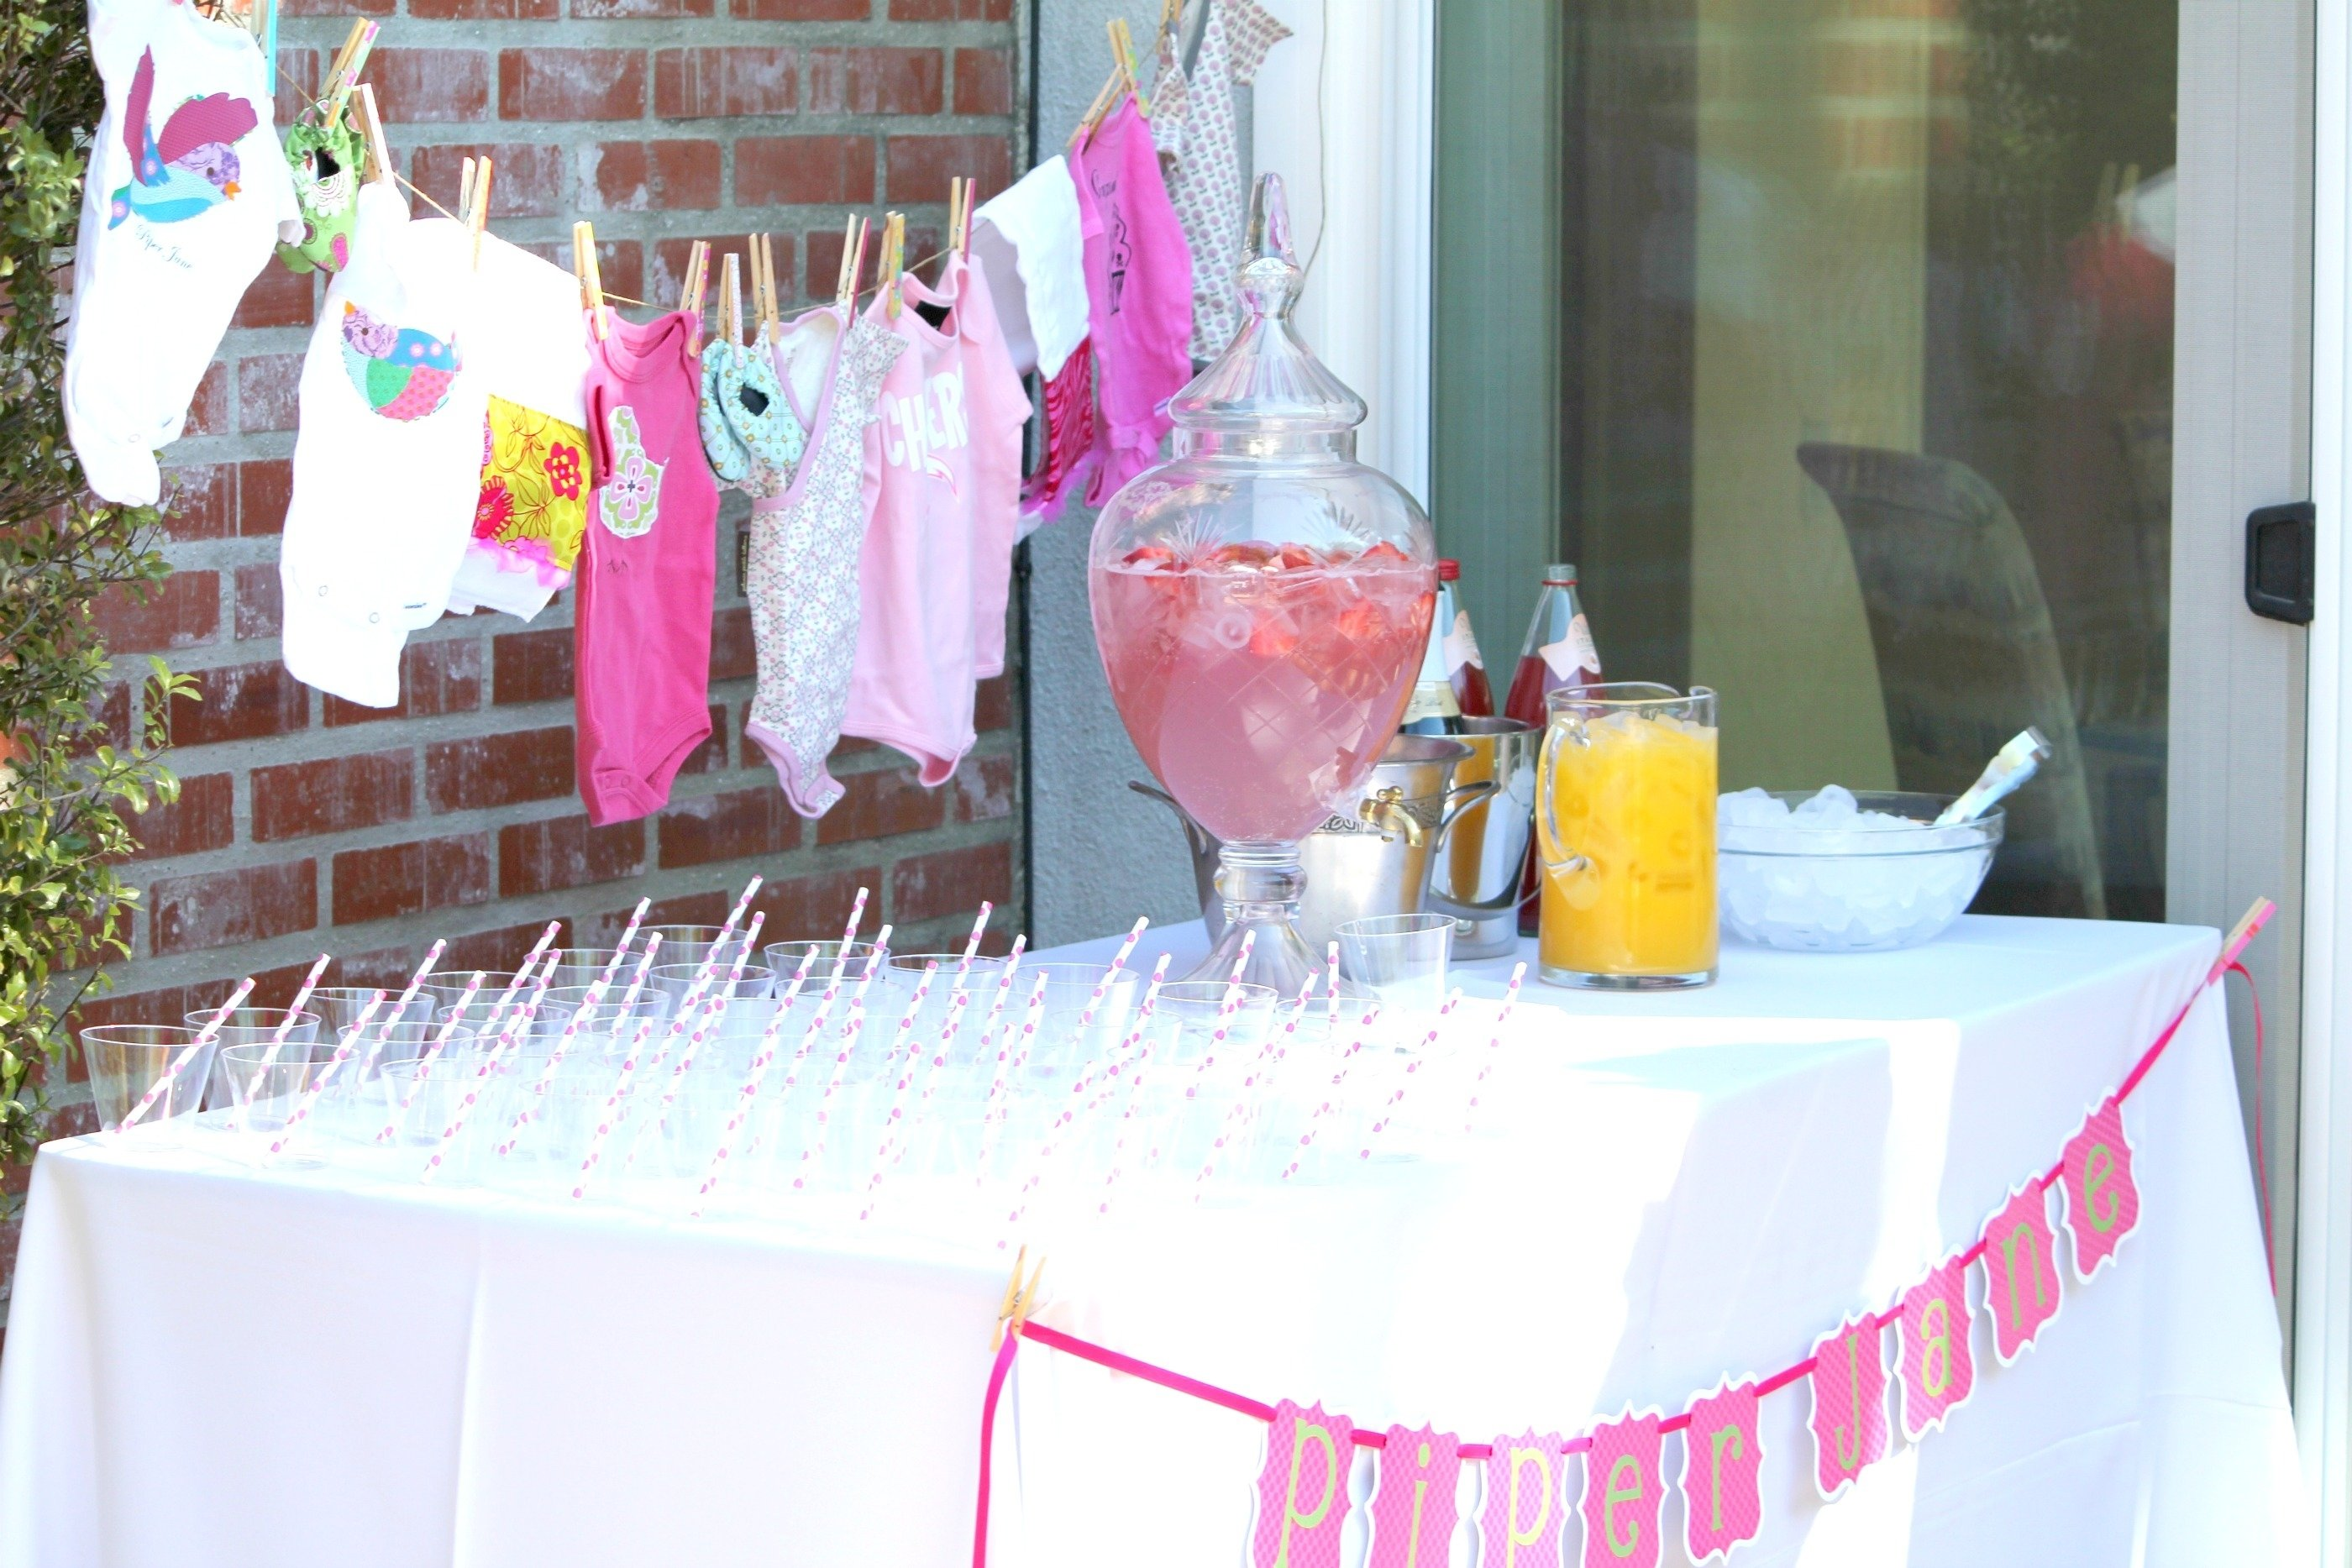 10 Famous Baby Shower Theme Ideas For A Girl baby shower plans daway dabrowa co 2020